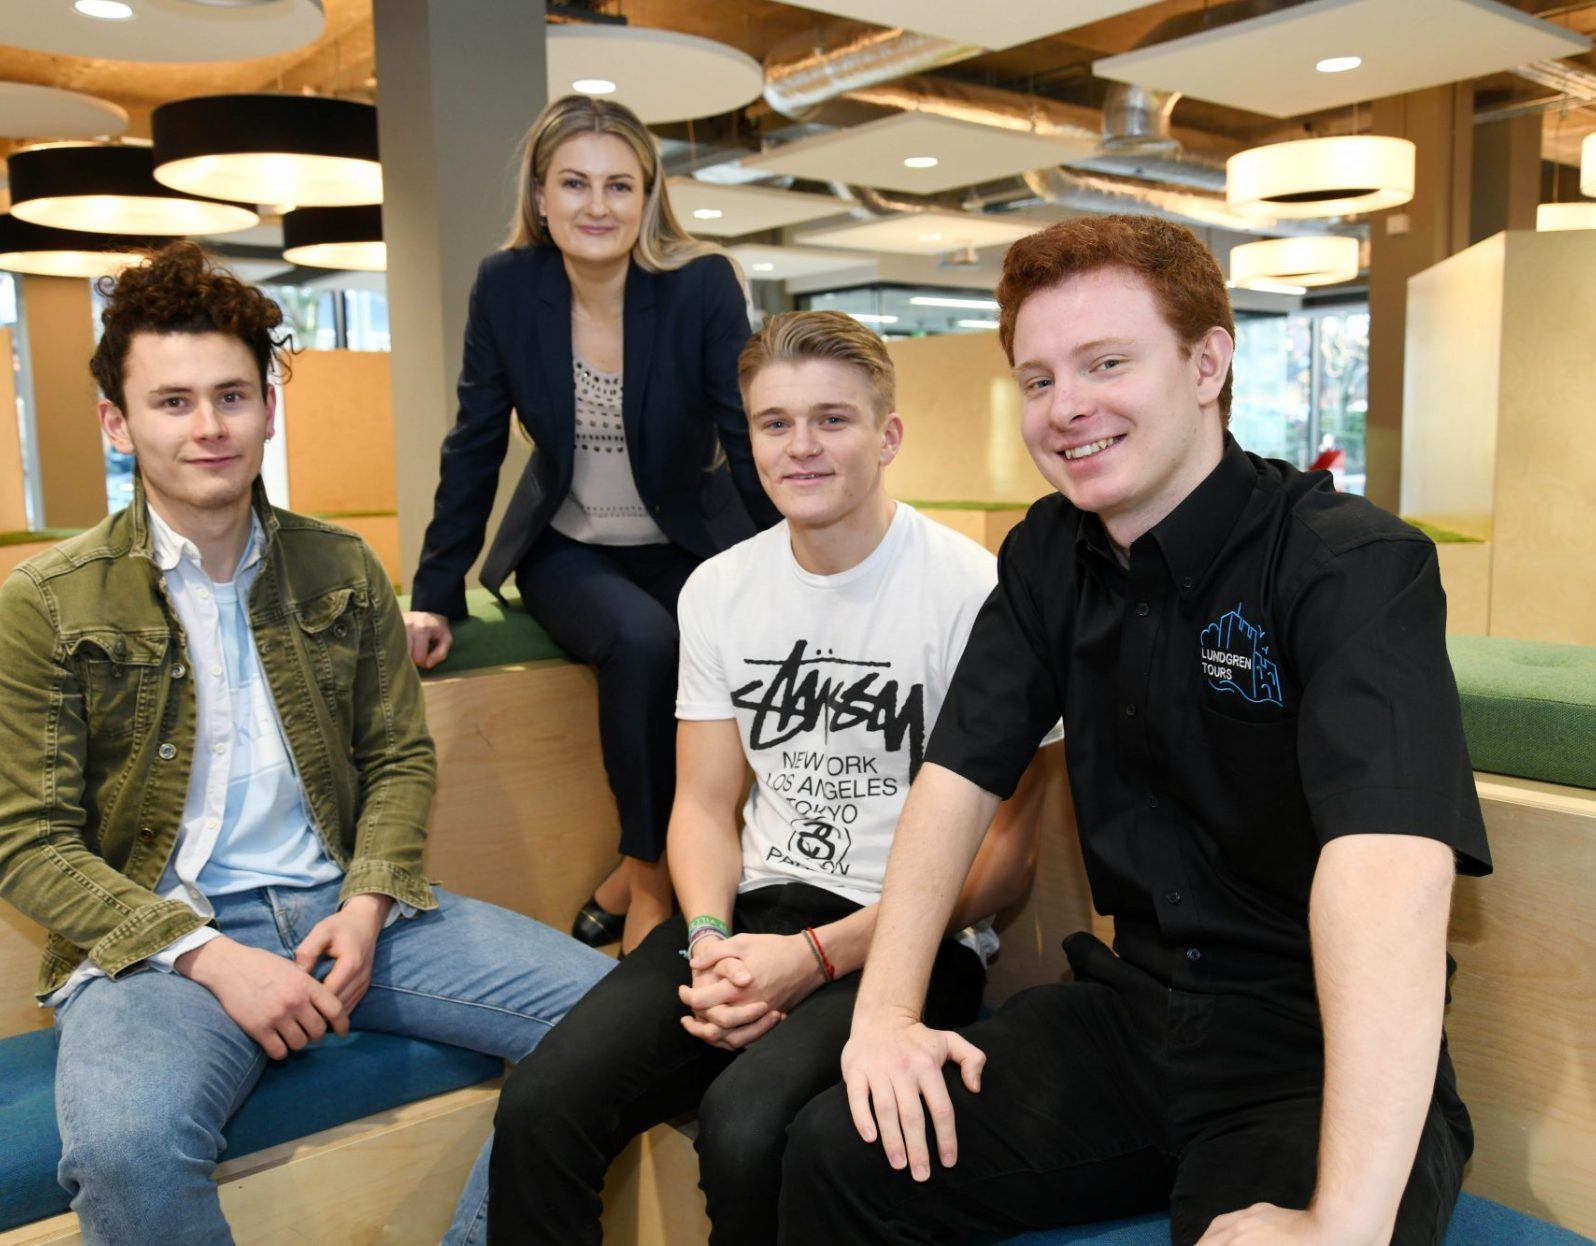 THREE GRADUATE ENTREPRENEURS NAILING THE START-UP SCENE IN THE NORTH EAST - Business News North East